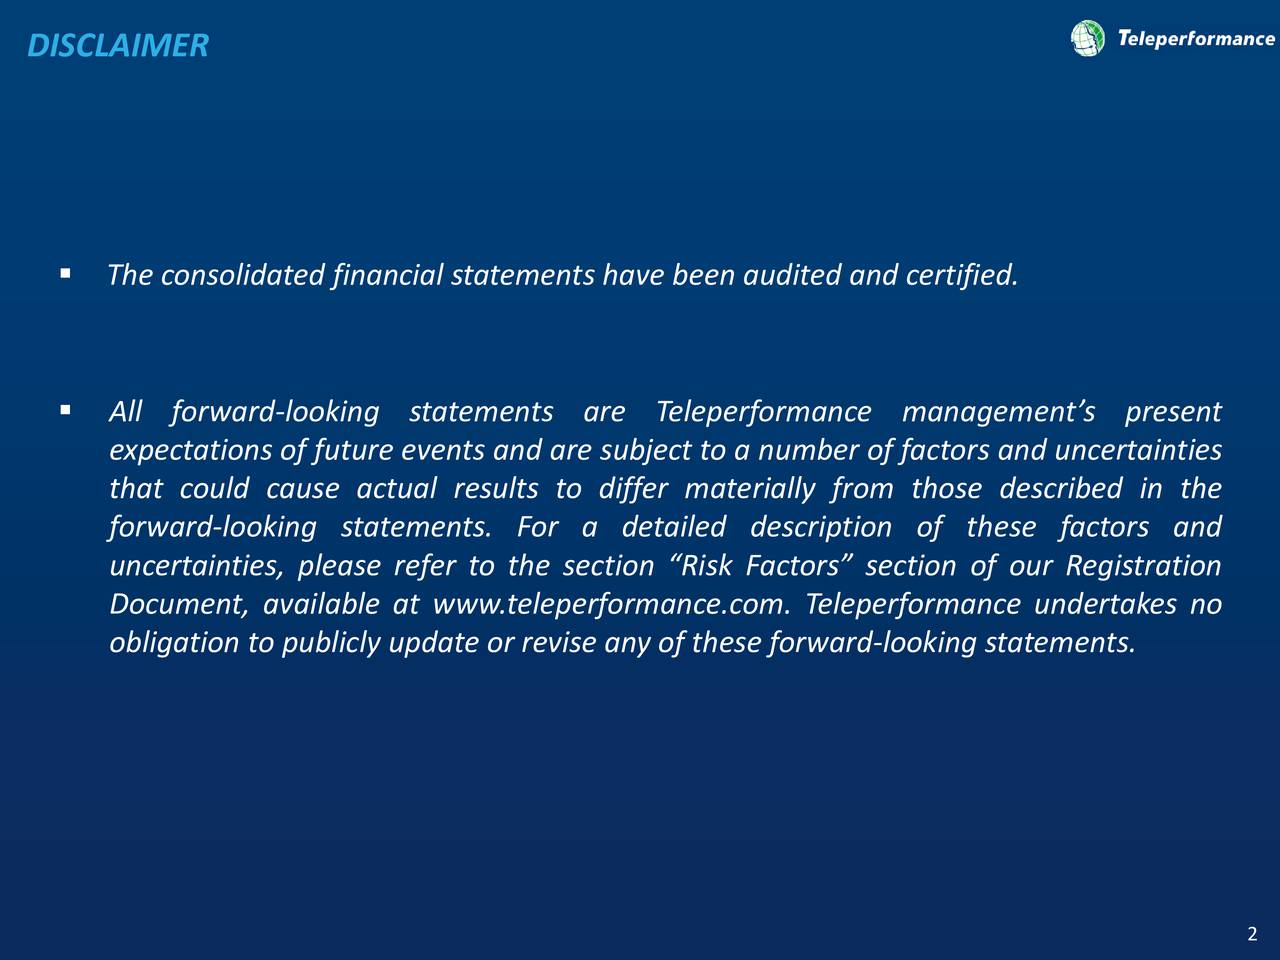 The consolidated financial statements have been audited and certified. All forward-looking statements are Teleperformance managements present expectations of future events and are subject to a number of factors and uncertainties that could cause actual results to differ materially from those described in the forward-looking statements. For a detailed description of these factors and uncertainties, please refer to the section Risk Factors section of our Registration Document, available at www.teleperformance.com. Teleperformance undertakes no obligation to publicly update or revise any of these forward-looking statements. 2